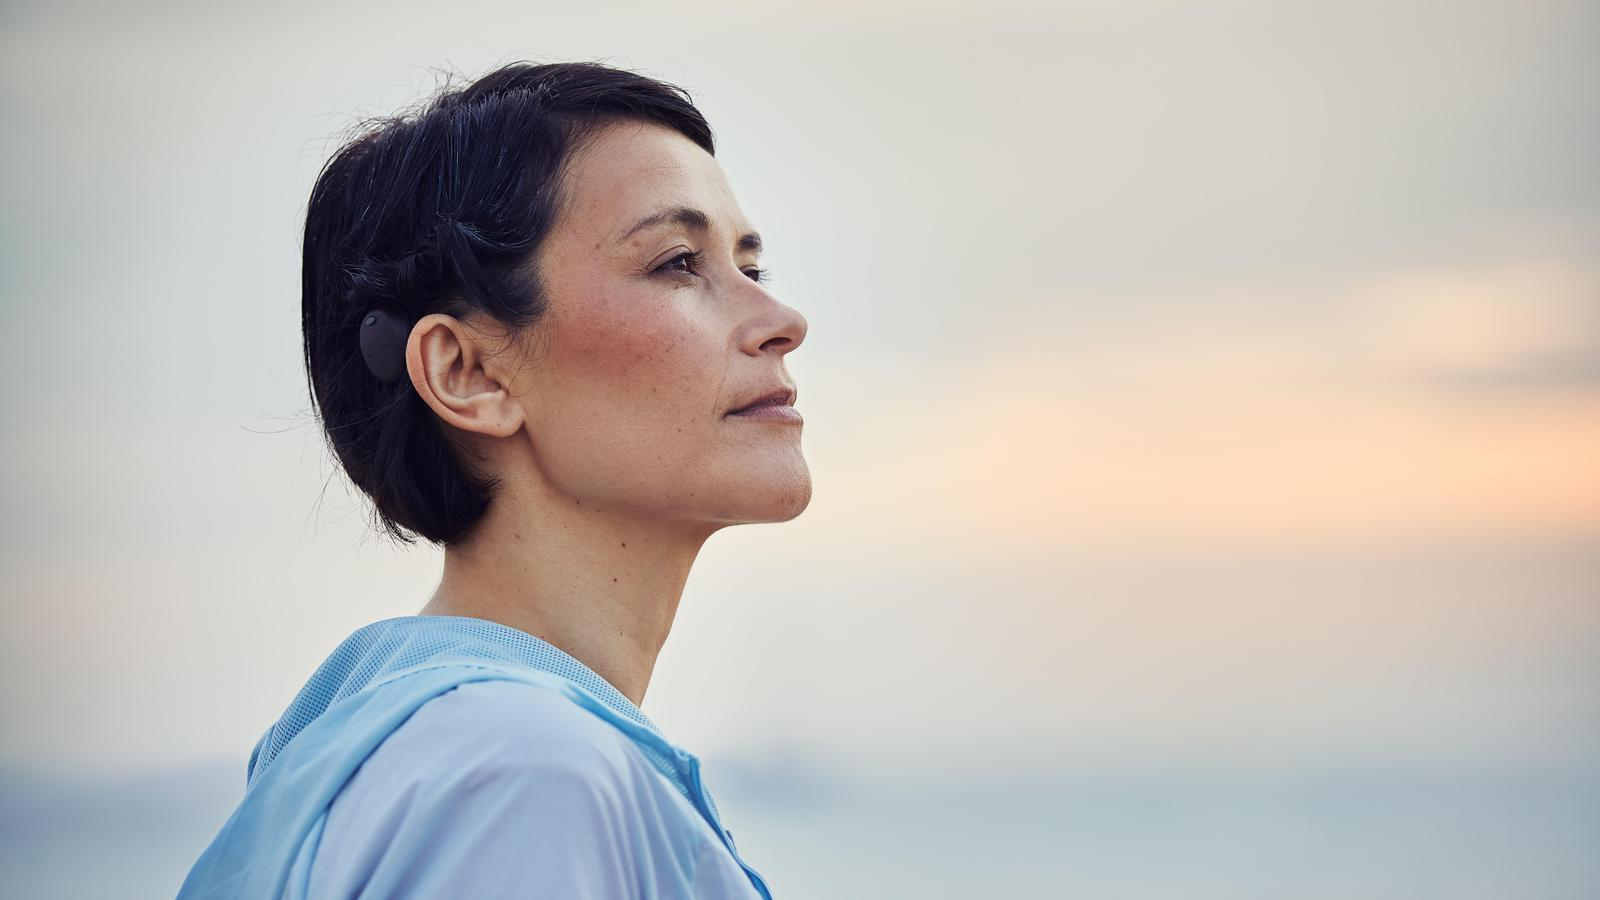 Head of caucasian woman looking into the distance and wearing an Osia implant